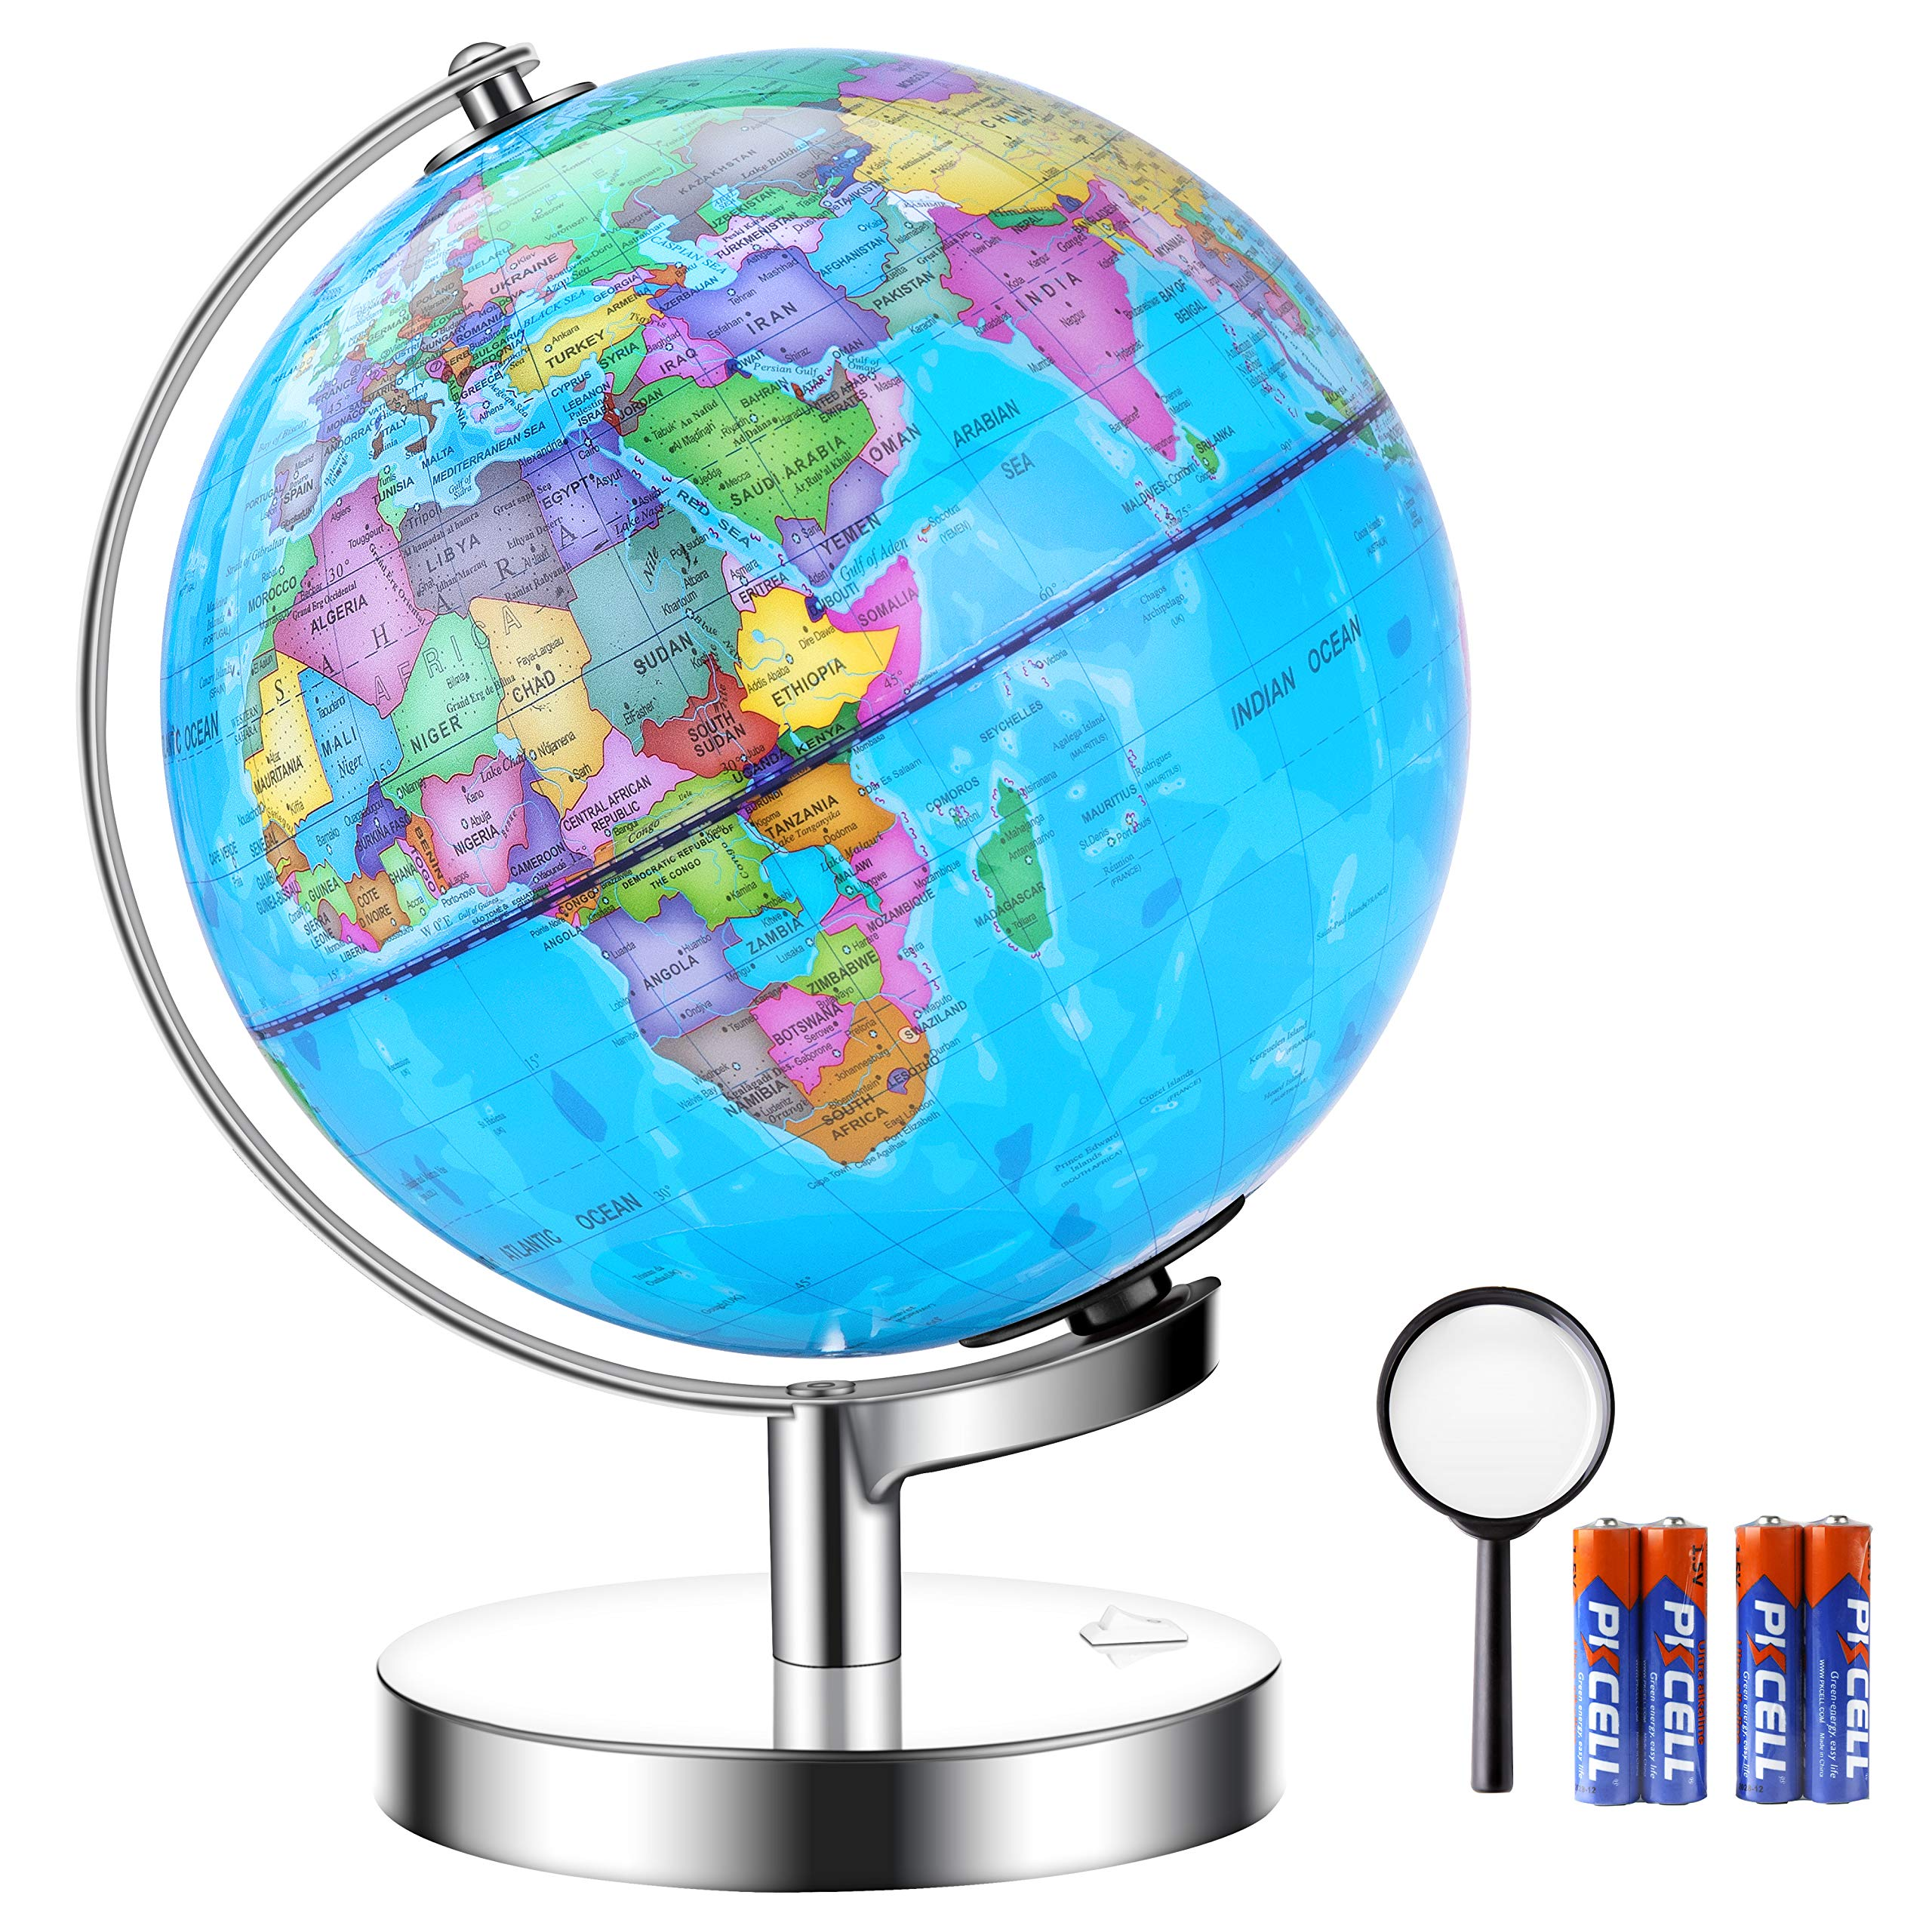 IKONG 8 inch Illuminated Globe of The World with Stand-Educational Globe Built in LED Light for Night View, Office Desktop World Globe,Magnifying Glass and 4 AA Batteries Included by IKONG